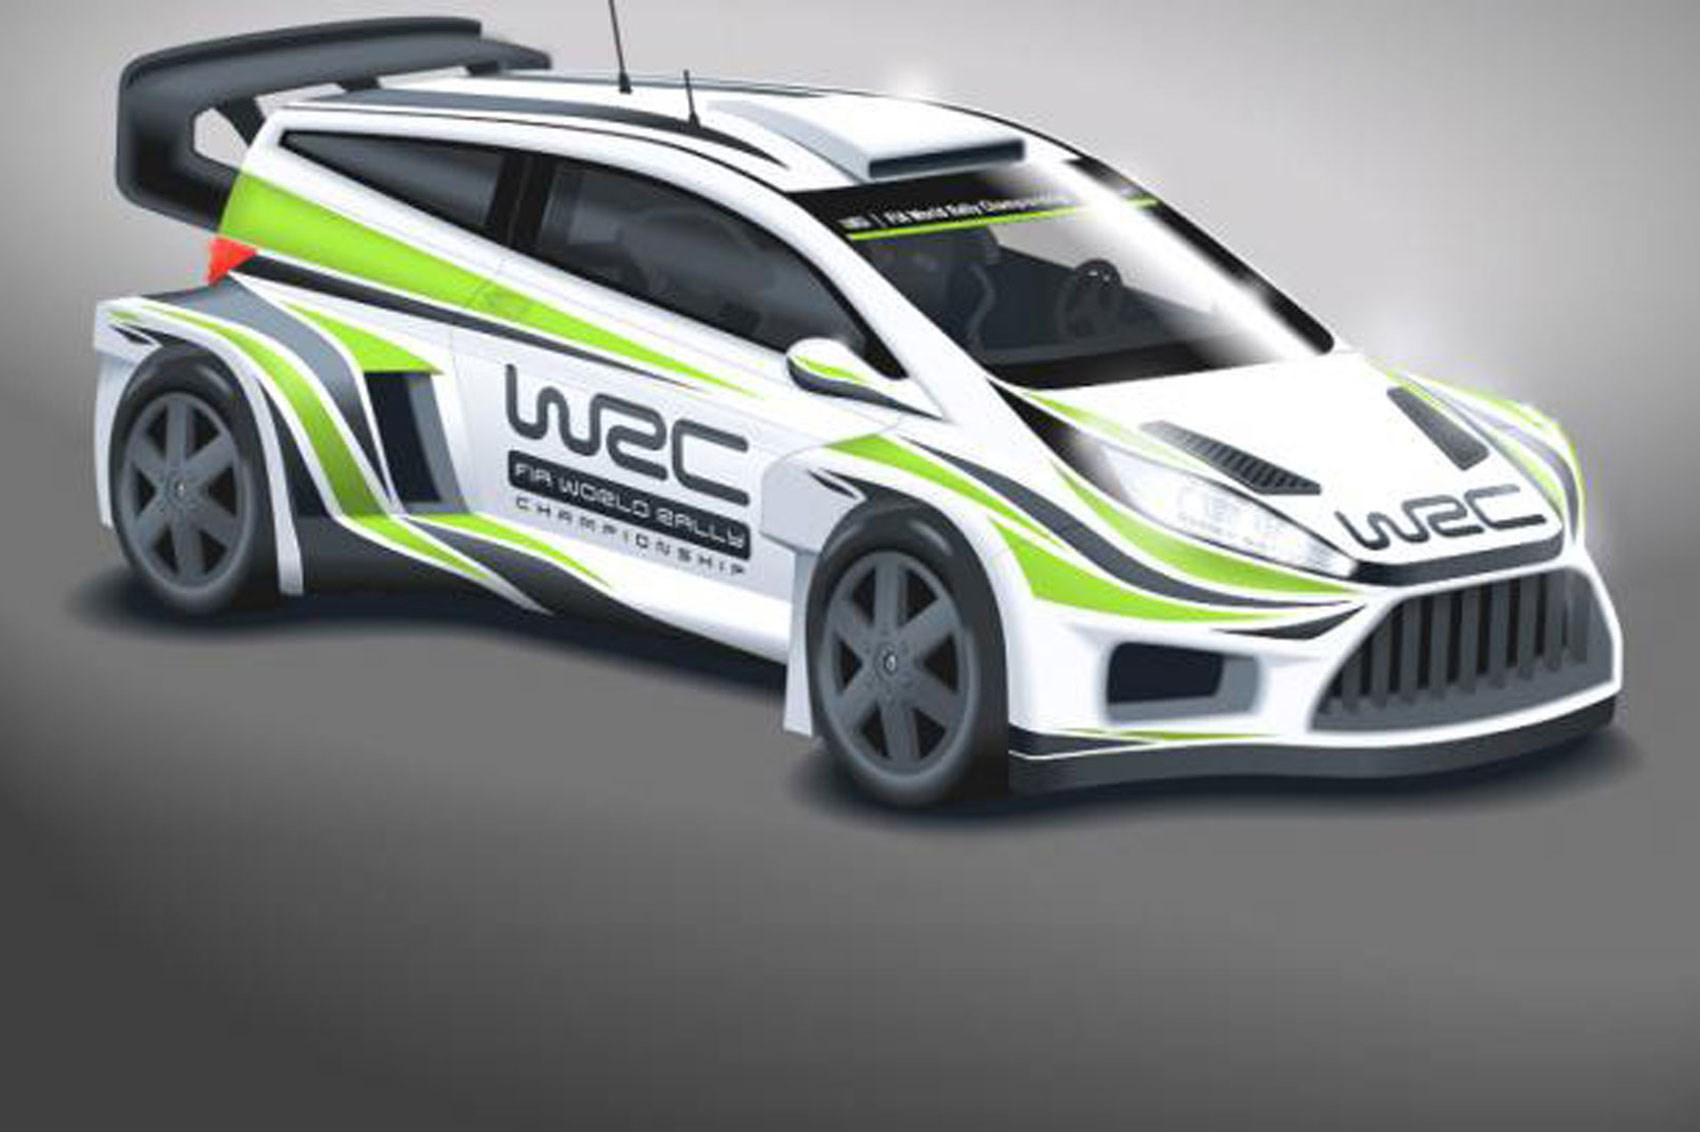 Ultrablogus  Pretty Wild New Look For Wrc Cars In  By Car Magazine With Inspiring Wrc Cars Will Get Wider Bodies Bigger Wings And More Power For  With Delectable Mitsubishi Eclipse Custom Interior Also R Gtr Interior In Addition Le Grand Bleu Yacht Interior And Peterbilt  Interior As Well As Boeing  Er Interior Photos Additionally   Interior From Carmagazinecouk With Ultrablogus  Inspiring Wild New Look For Wrc Cars In  By Car Magazine With Delectable Wrc Cars Will Get Wider Bodies Bigger Wings And More Power For  And Pretty Mitsubishi Eclipse Custom Interior Also R Gtr Interior In Addition Le Grand Bleu Yacht Interior From Carmagazinecouk